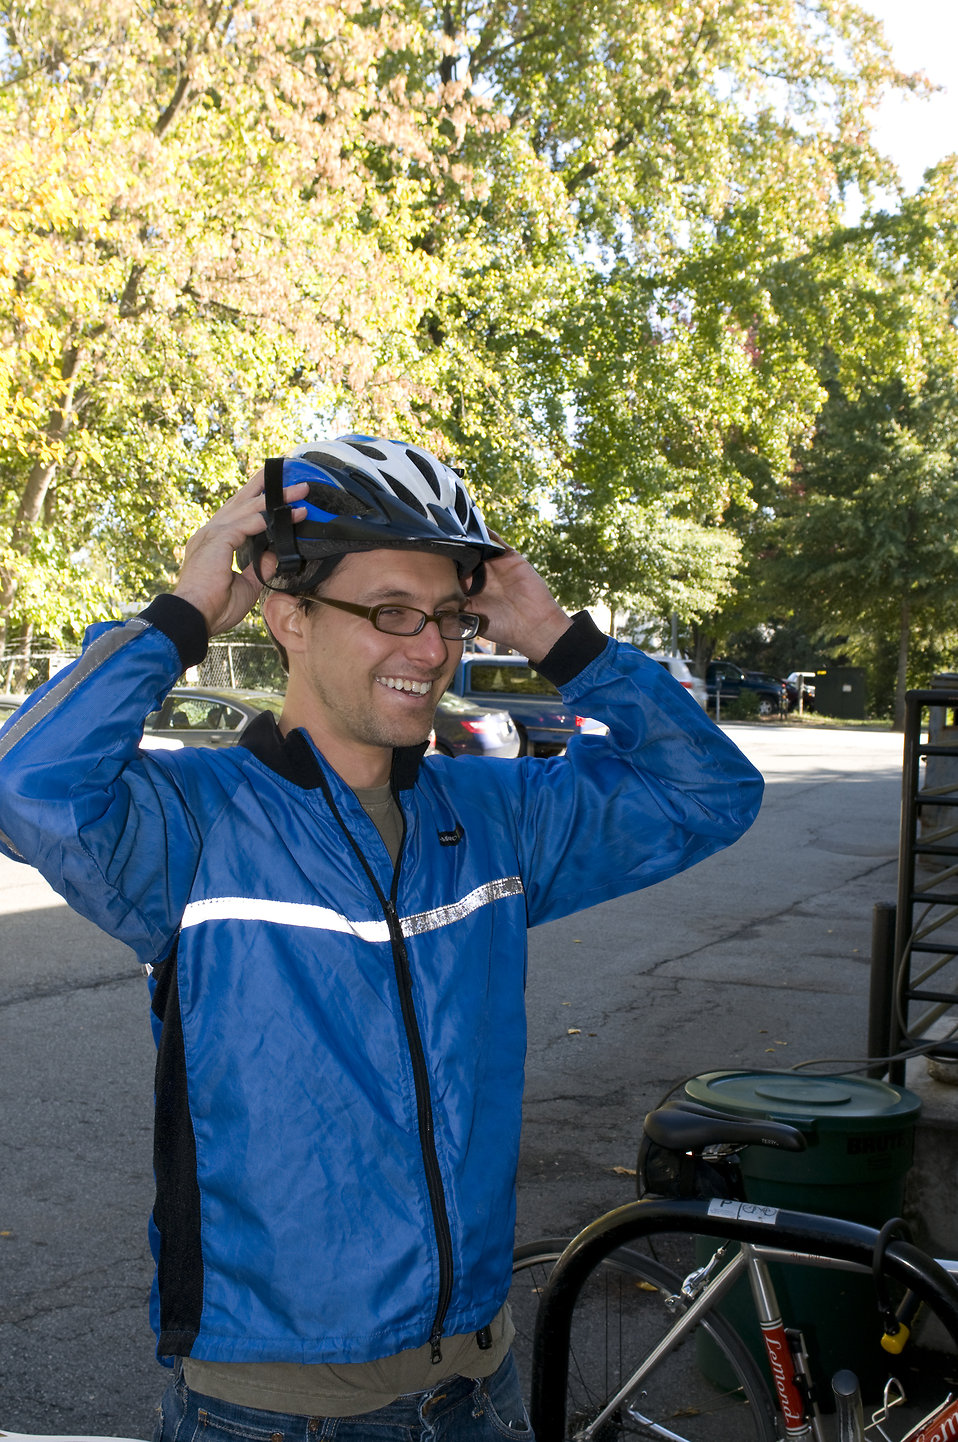 A bicyclist putting on a safety helmet : Free Stock Photo